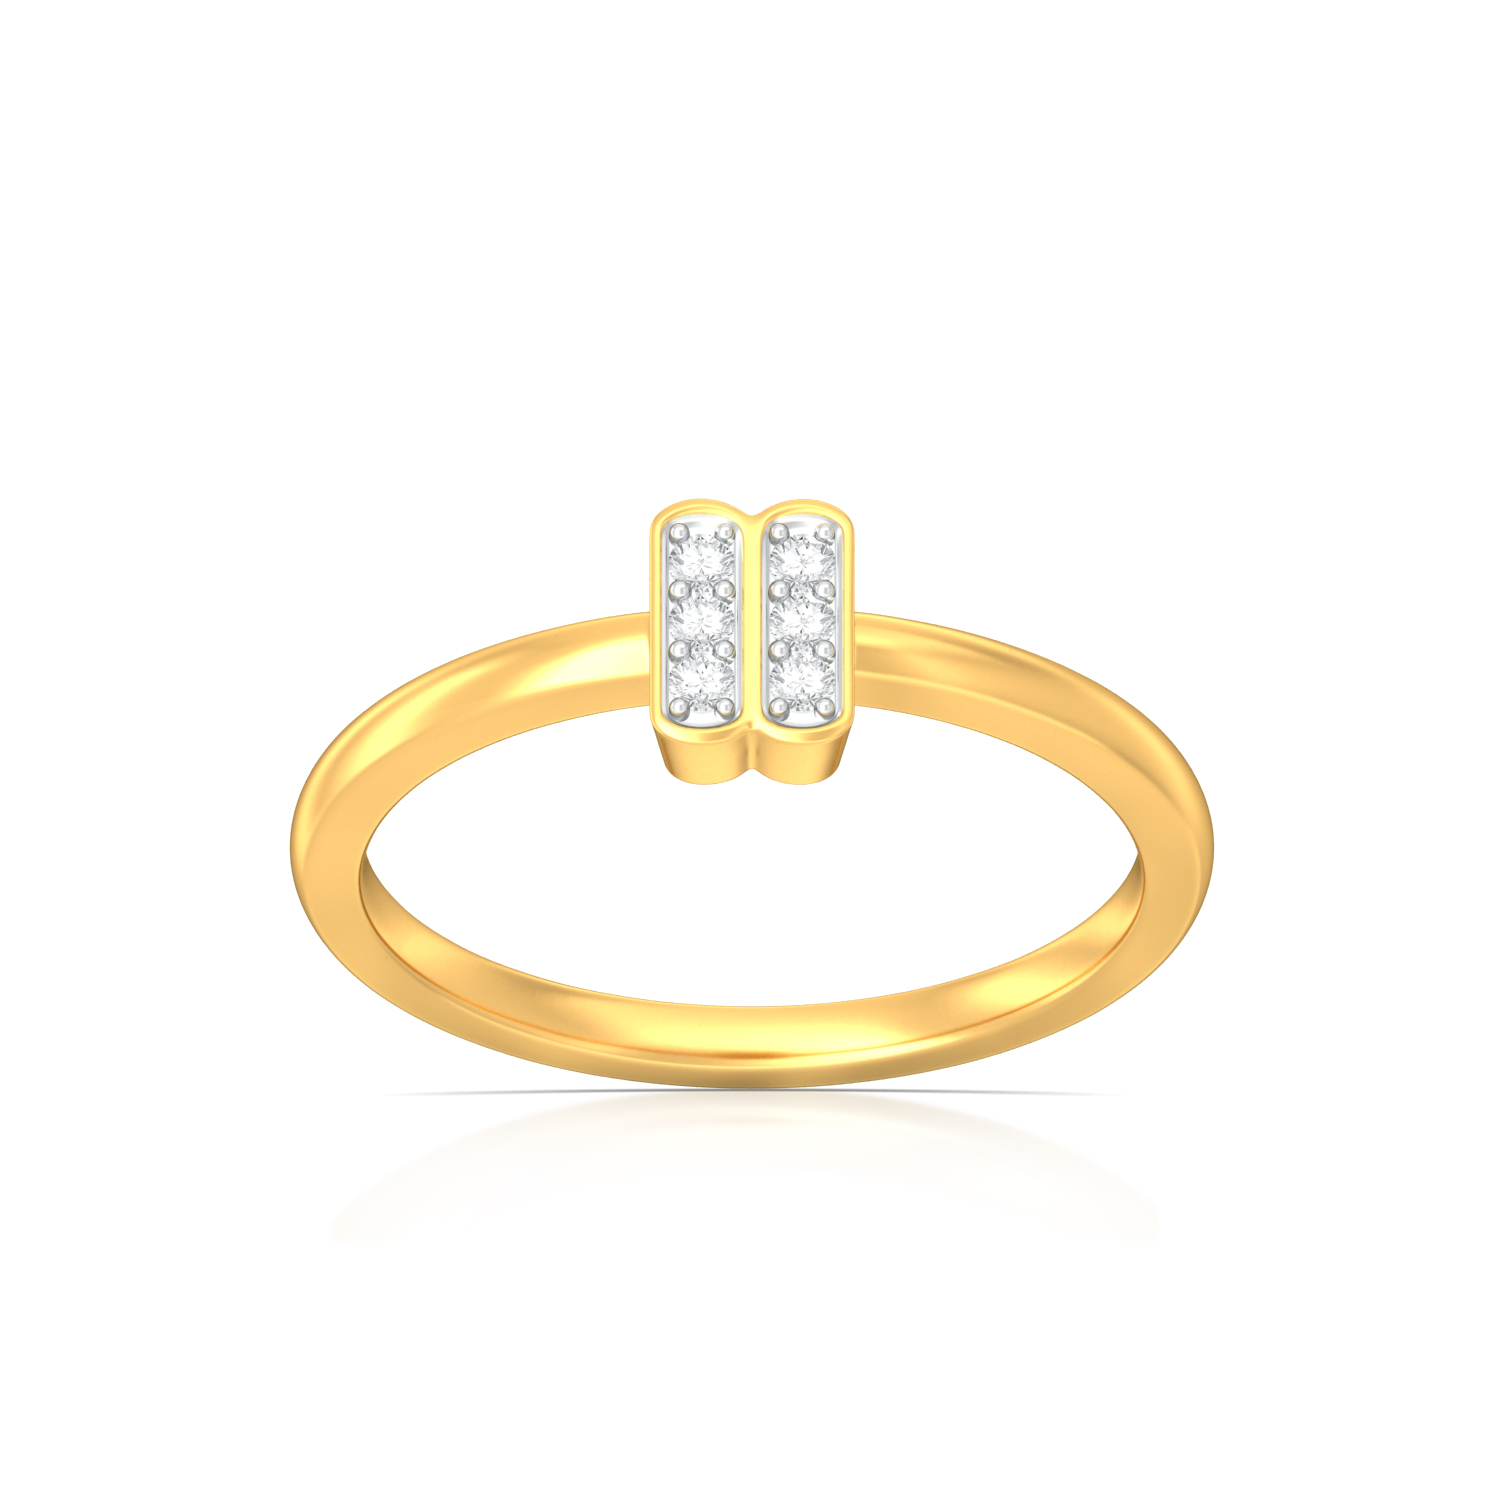 Spots and Stripes Diamond Rings